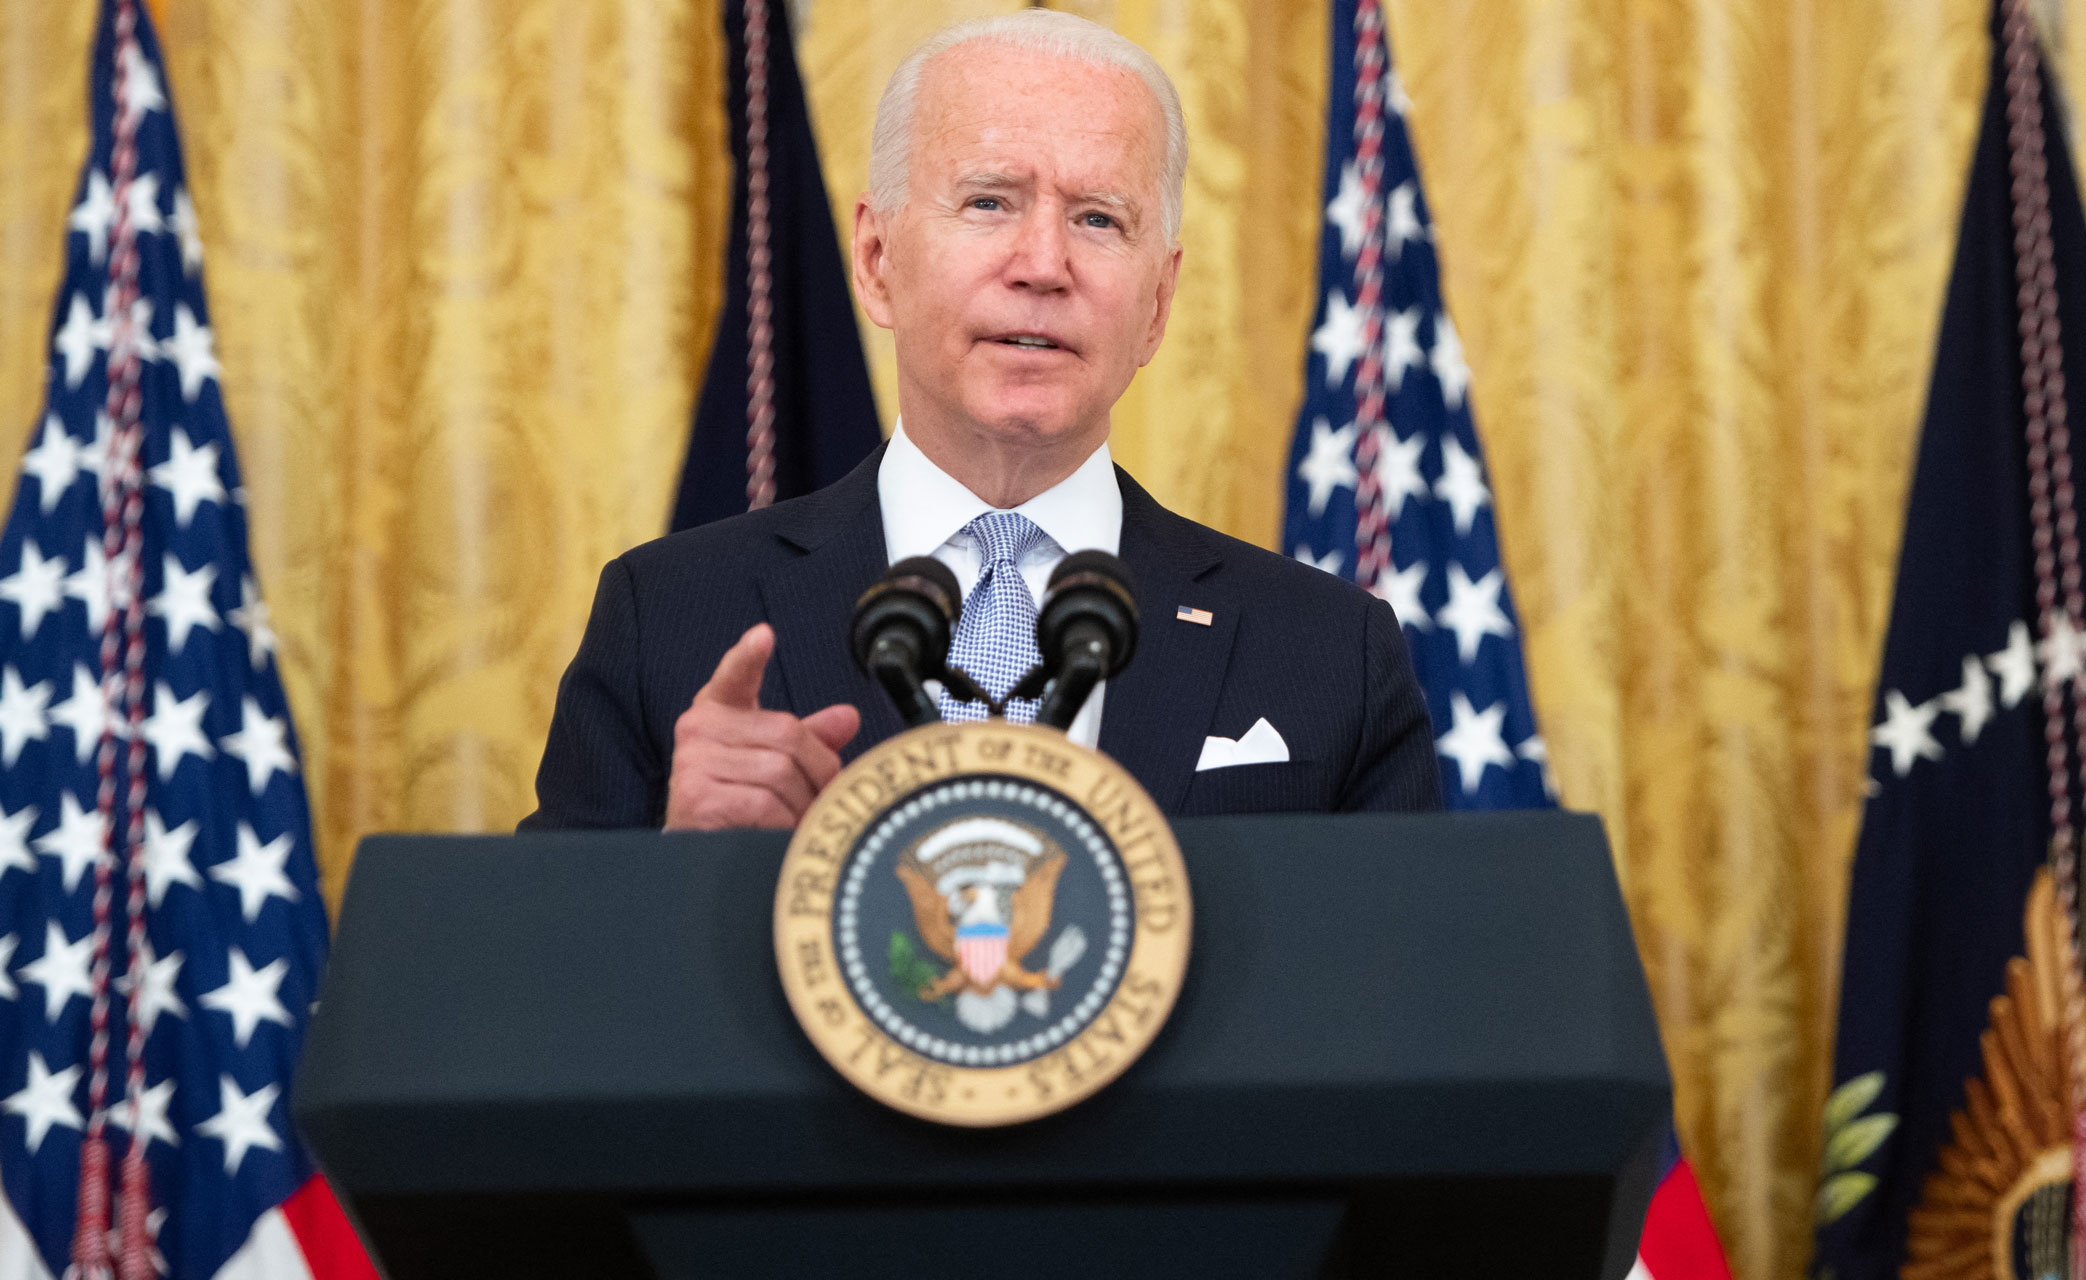 President Joe Biden speaks about Covid vaccinations in the East Room of the White House on Thursday, July 29.